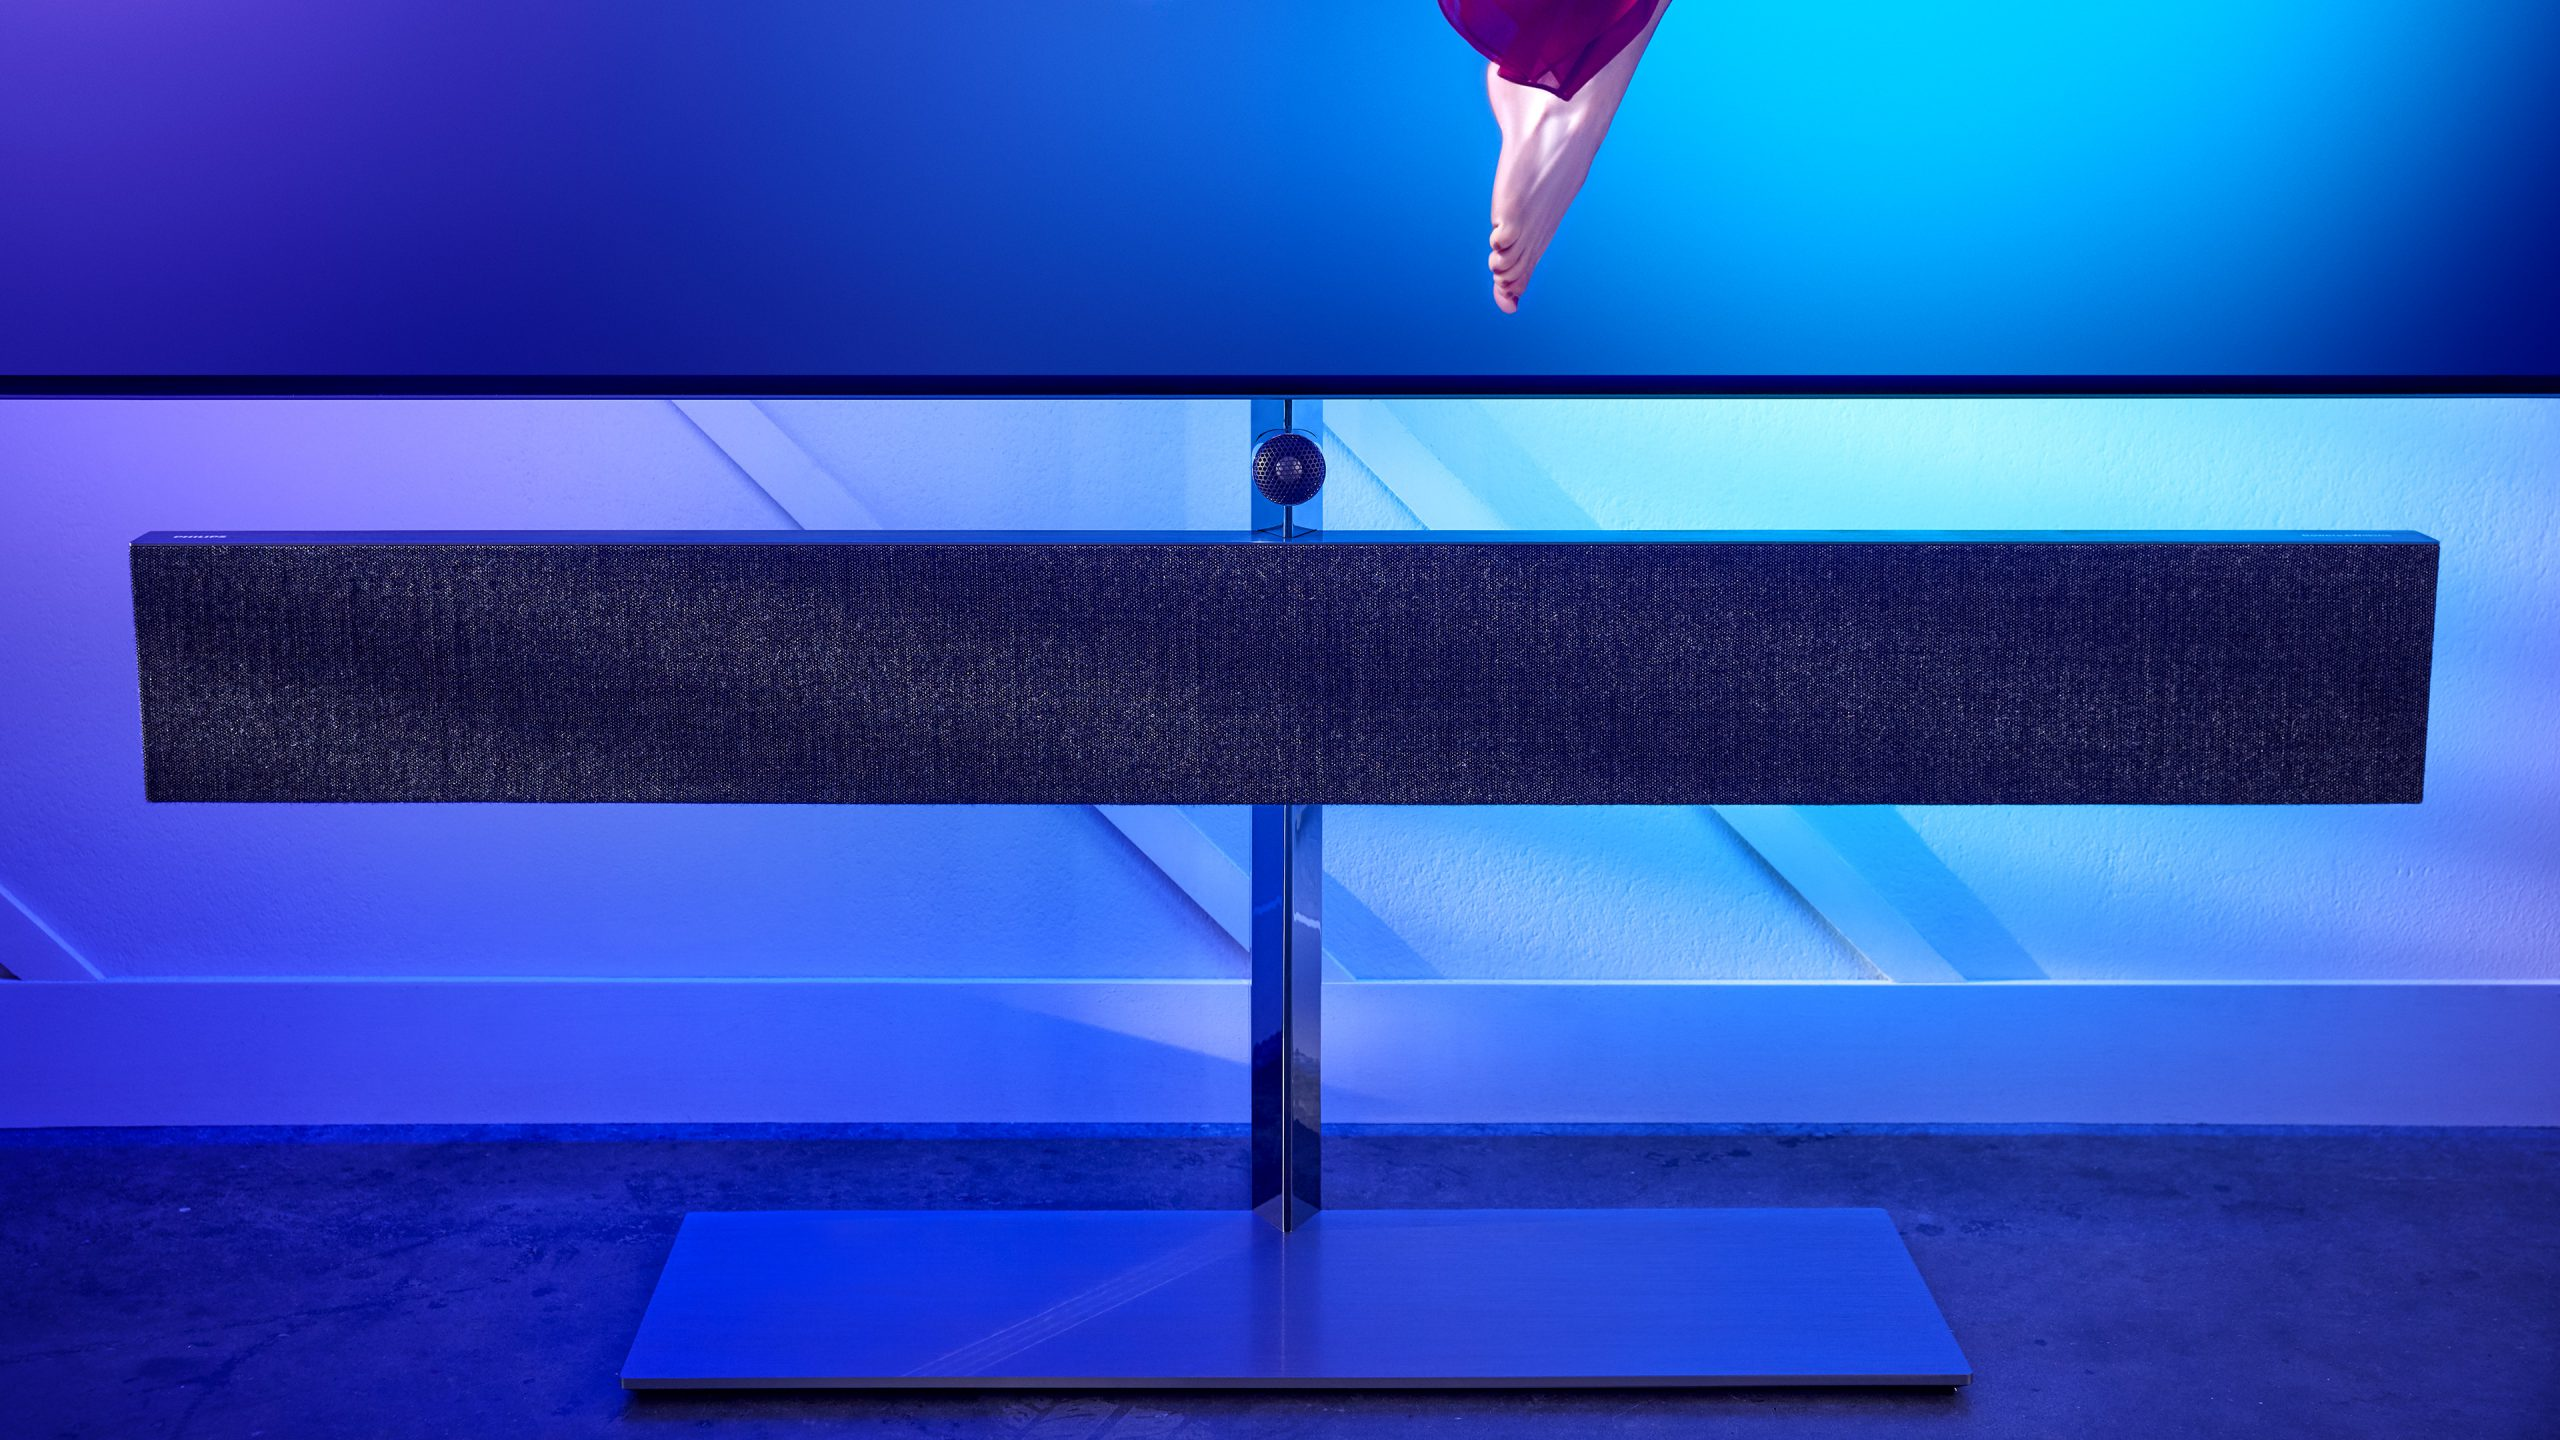 Philips 65OLED984 soundbar front